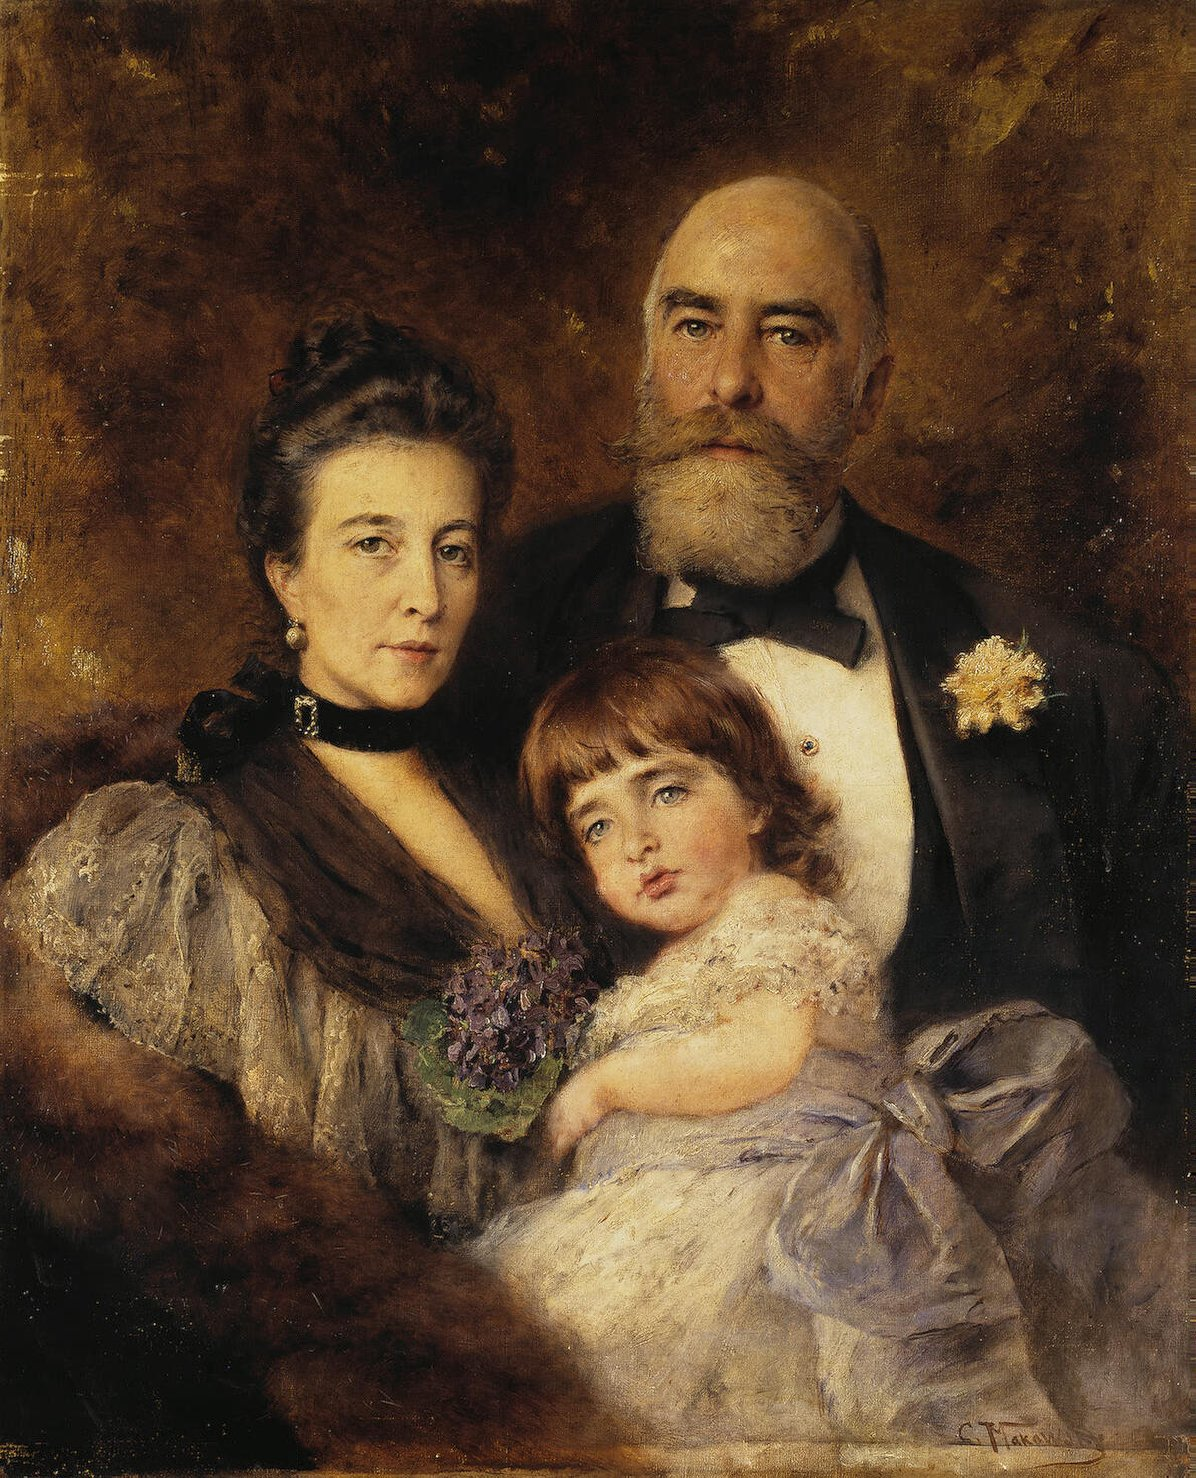 https://i0.wp.com/upload.wikimedia.org/wikipedia/commons/1/10/Makovsky_Konstantin_Egorovich_-_Group_Portrait_of_M.S._Volkov_S.N._Volkova_and_S.M._Volkov-Manzei.jpg